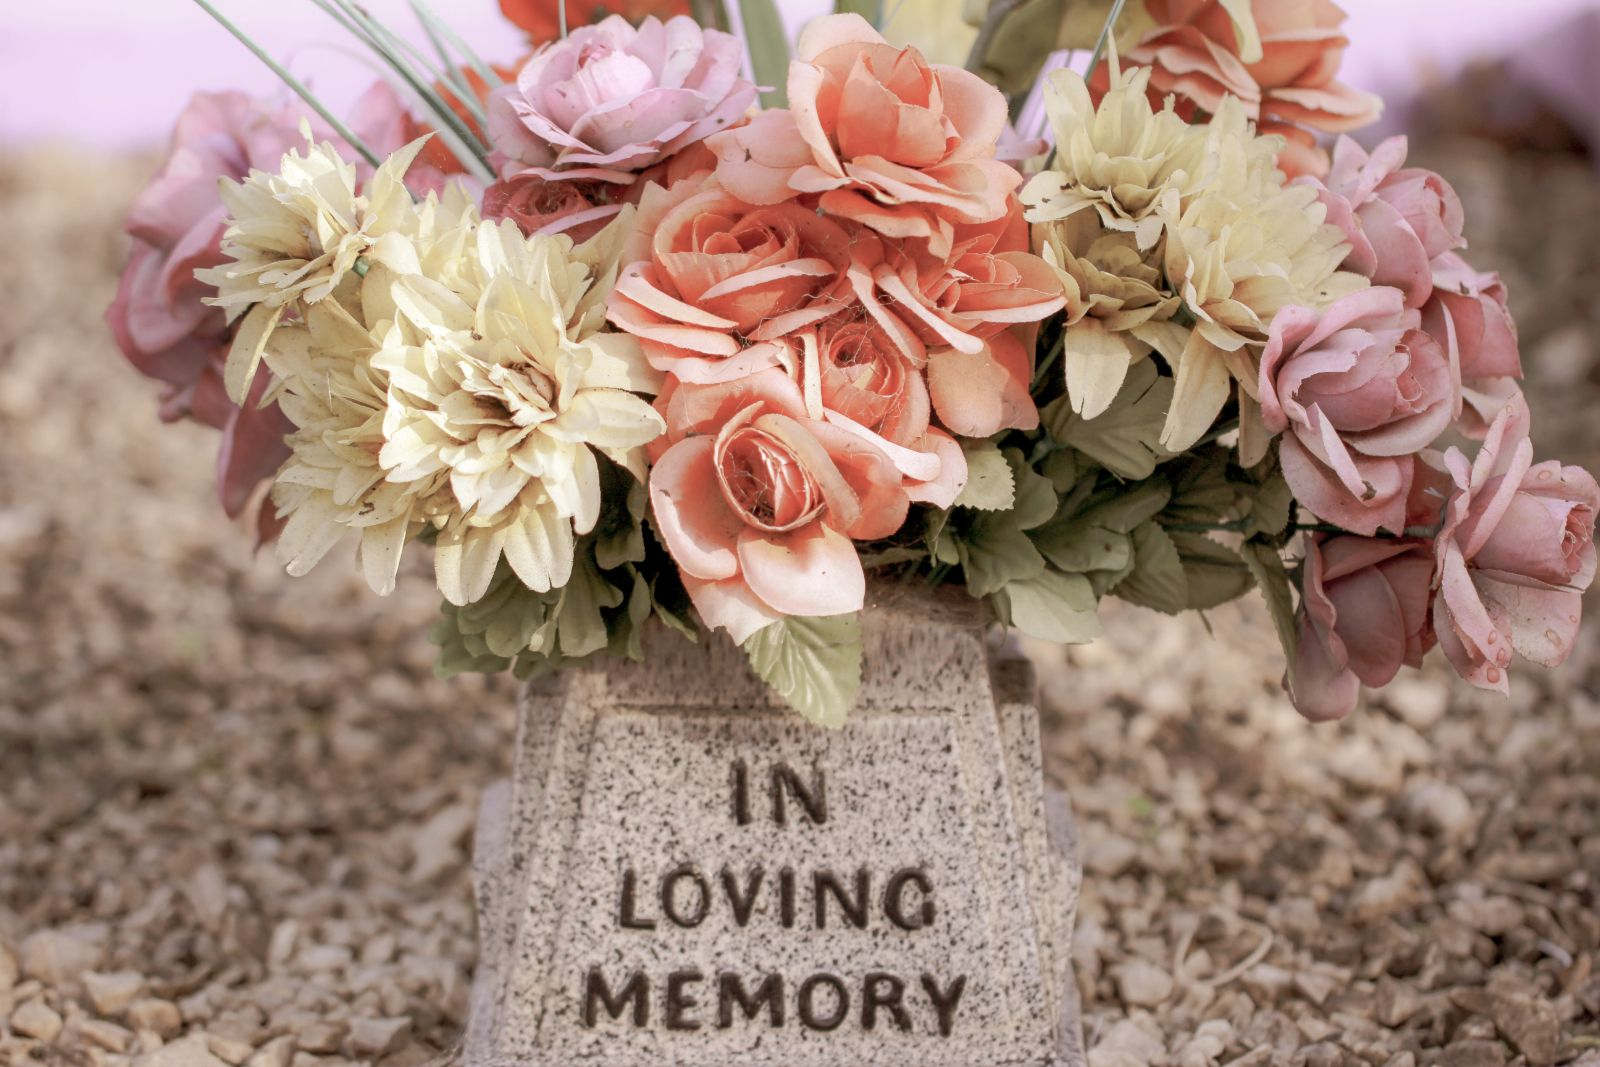 Humanist Funerals and Memorials by Margaret Mulholland